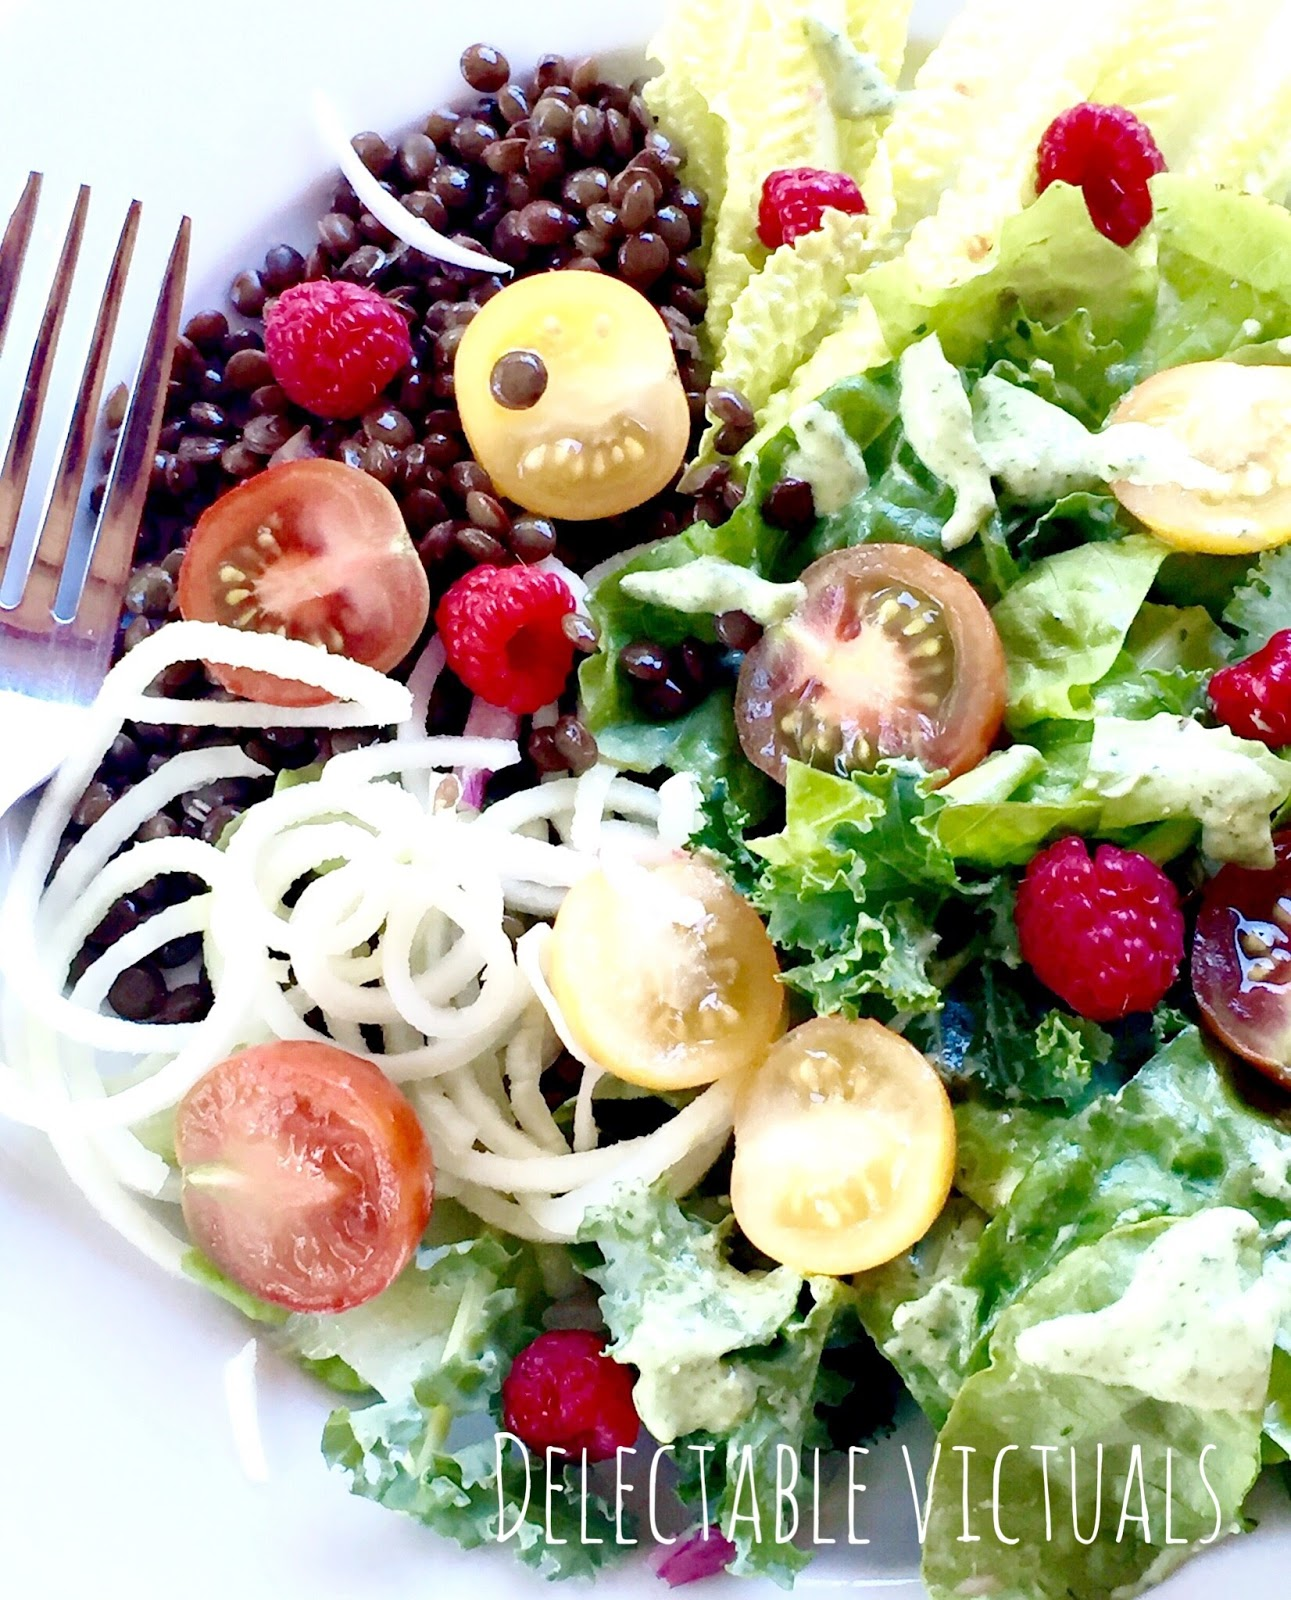 Summer Salad with Kohlrabi and Lentils raspberries kale green goddess herb dressing